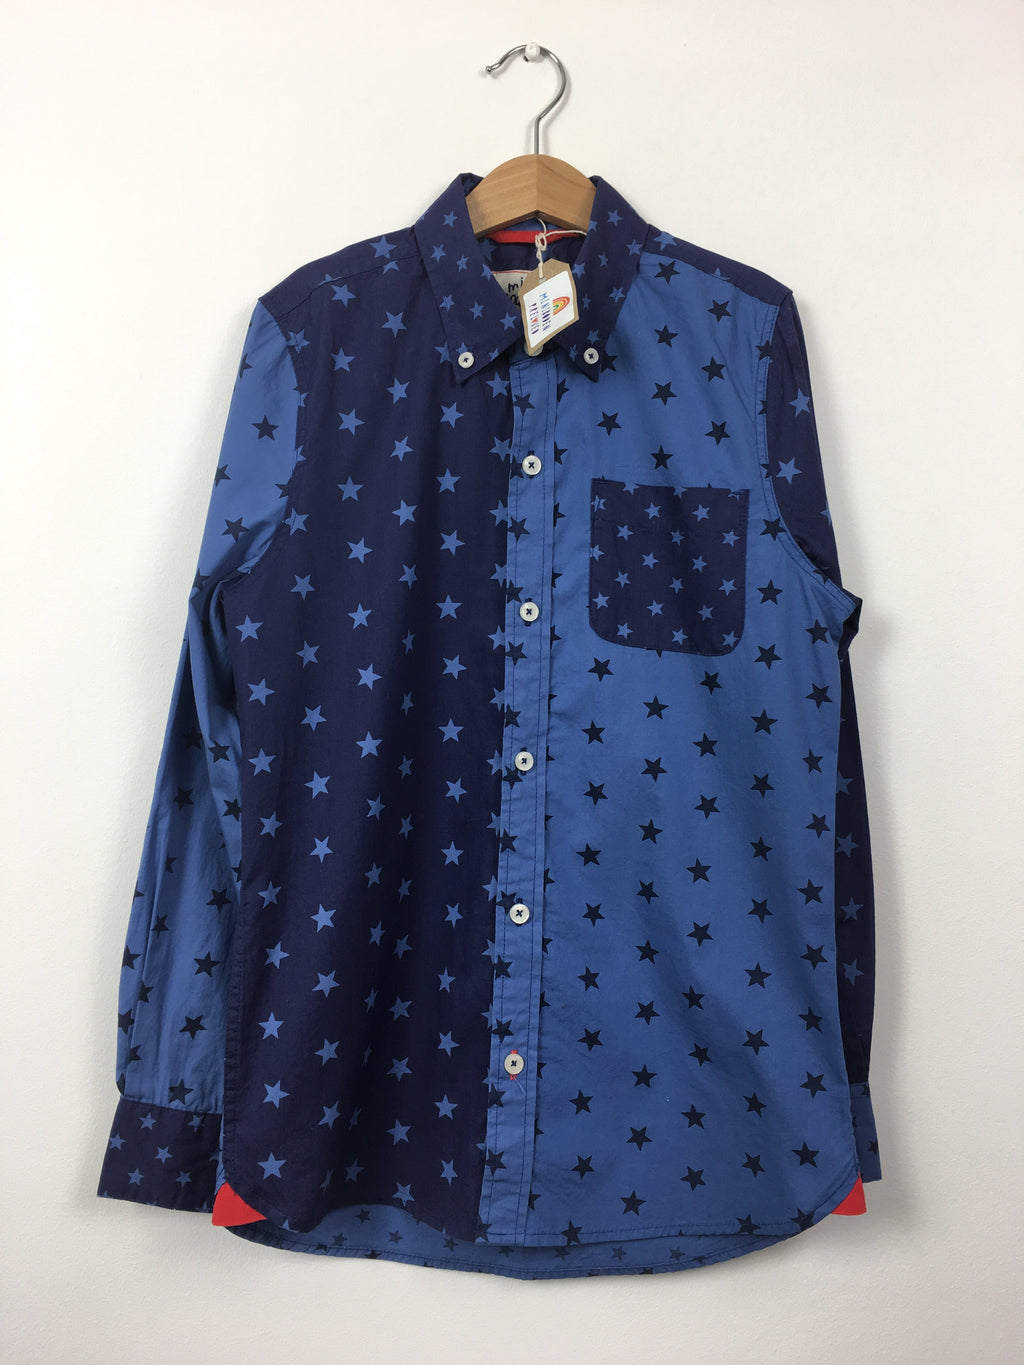 Star Print Blue Shirt (9-10 Years)